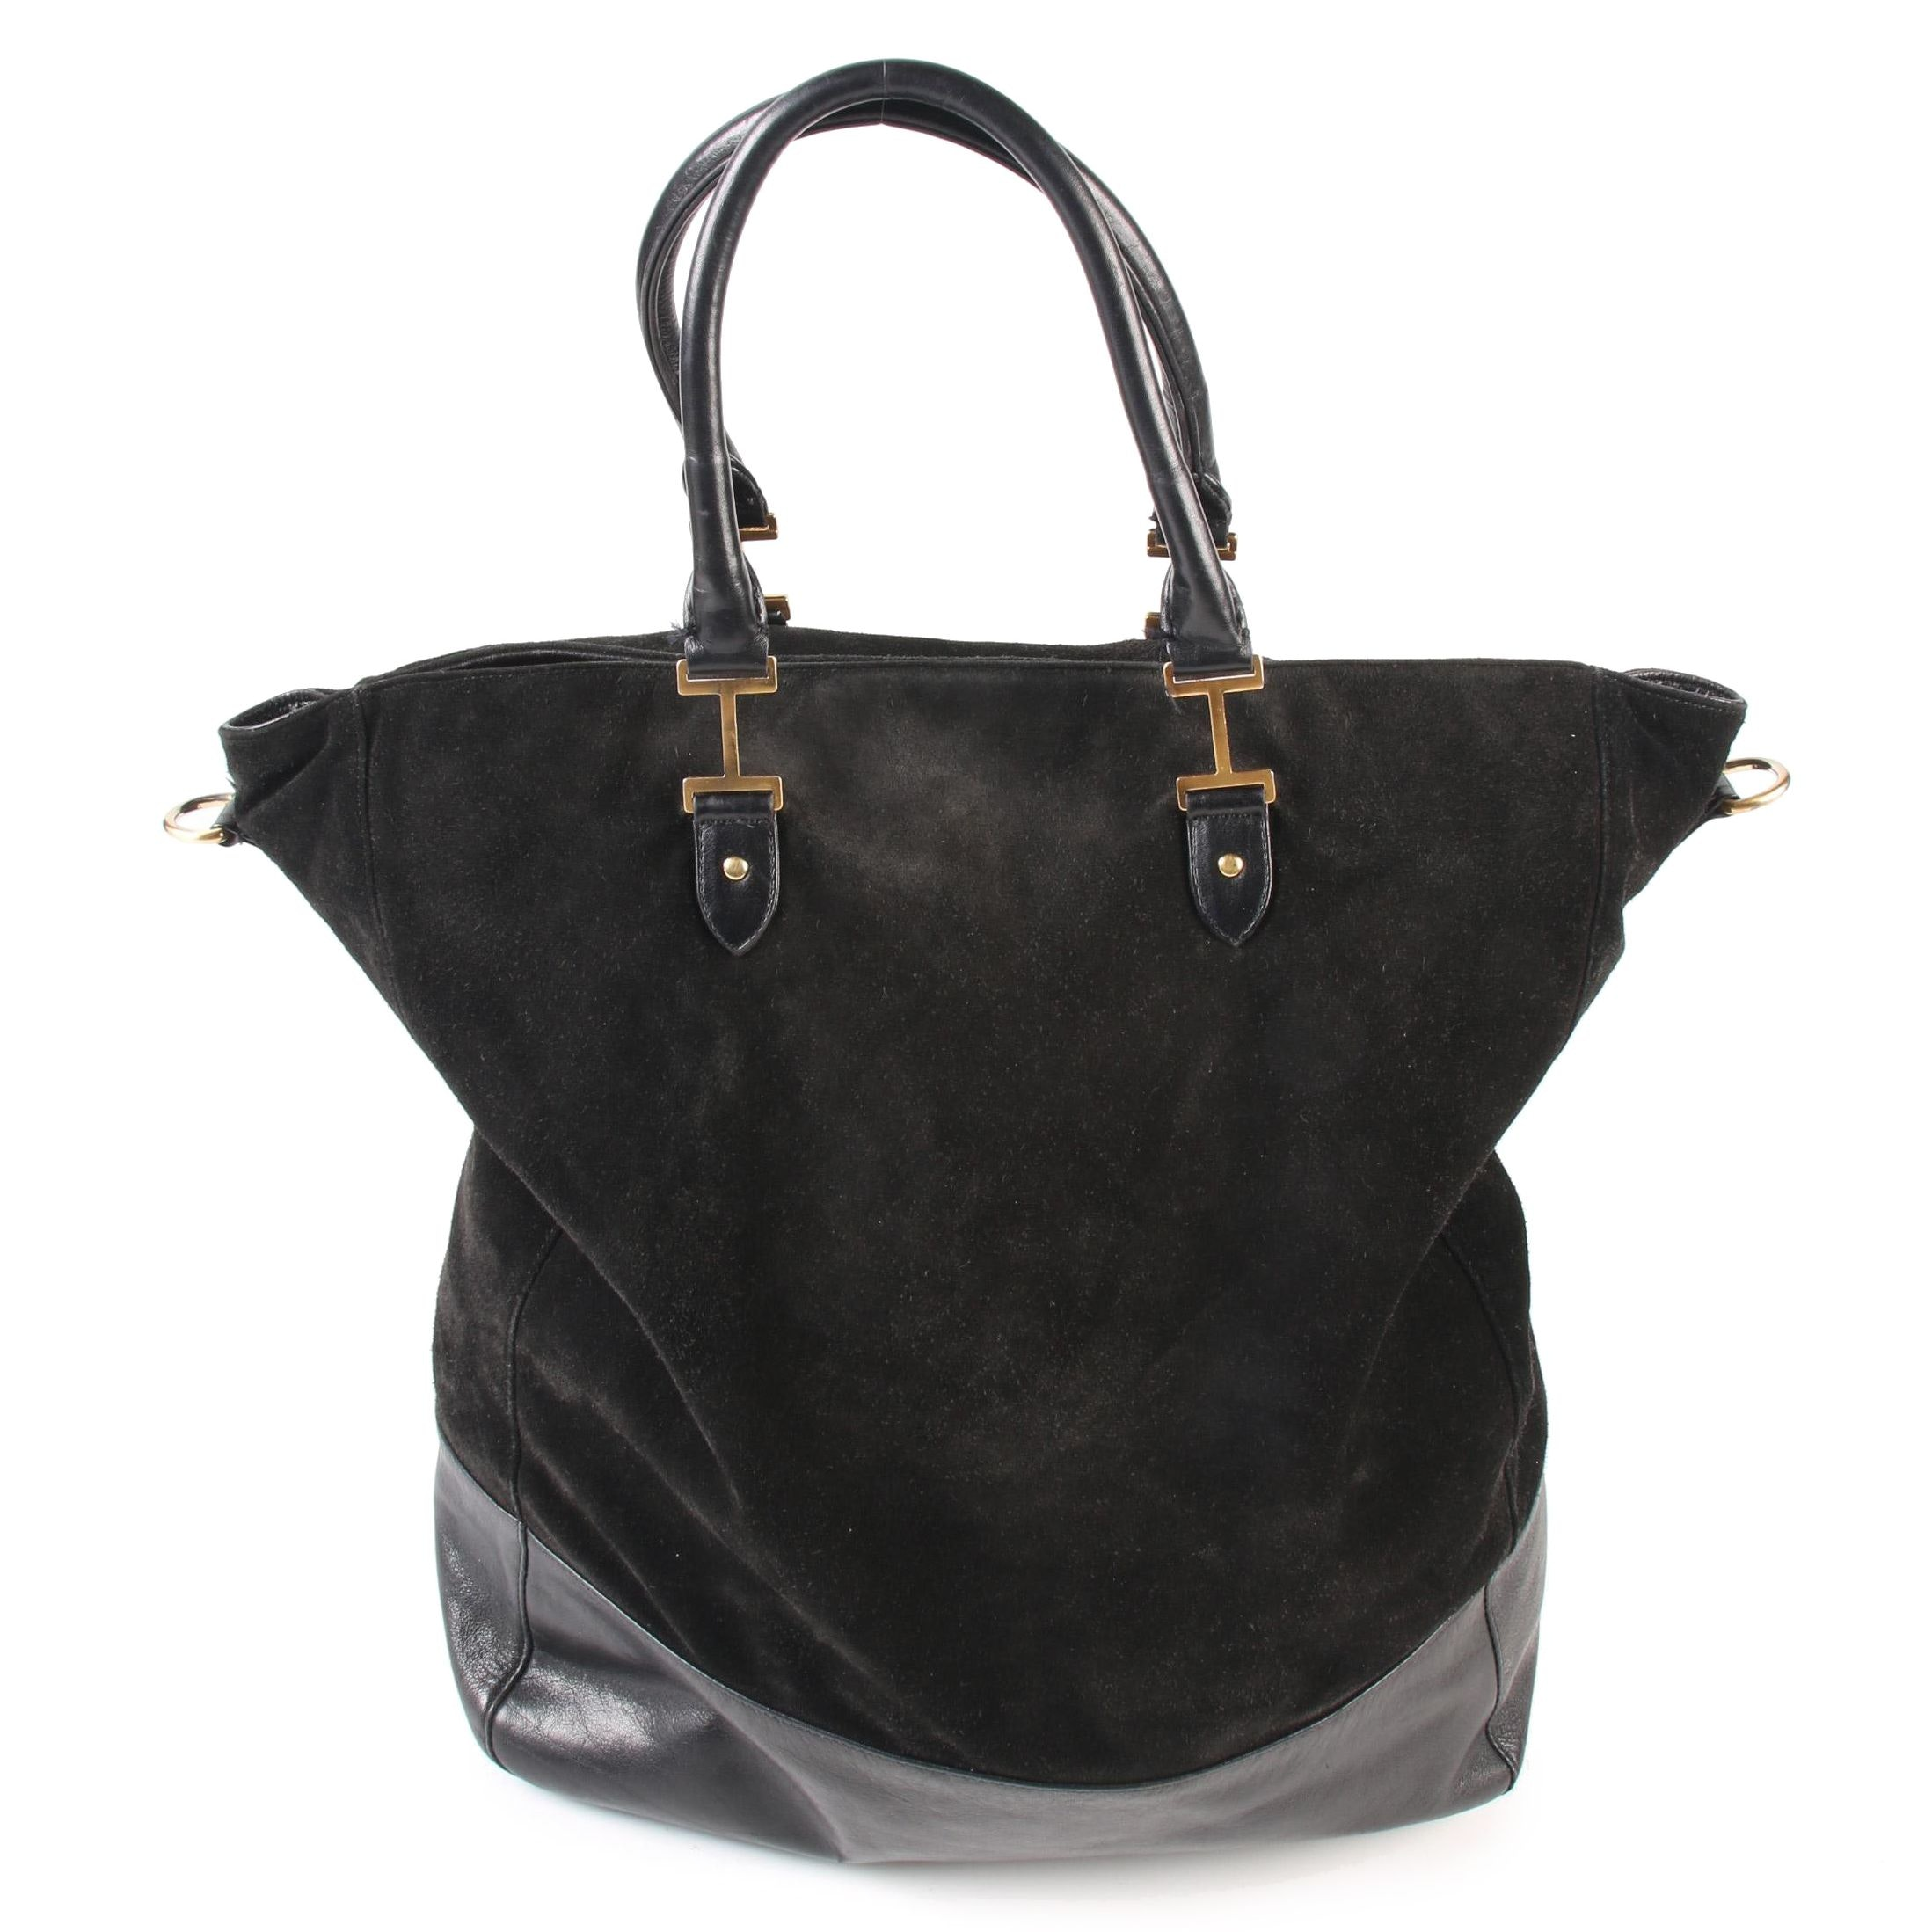 Isaac Mizrahi Black Suede and Leather Trimmed Tote